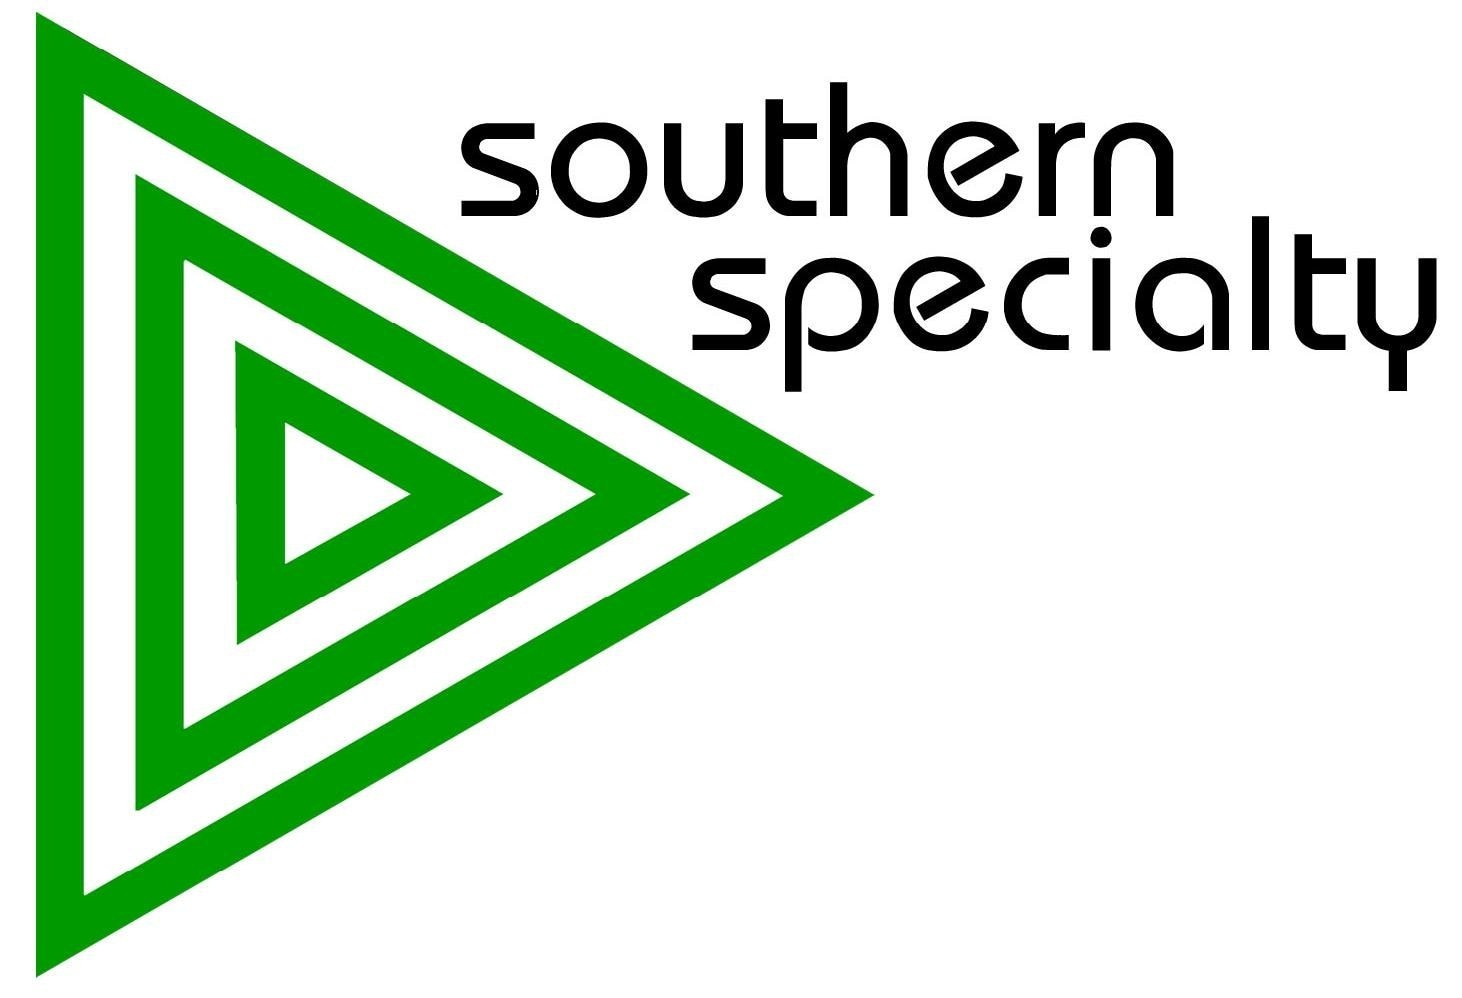 Southern Specialty Contractor LLC logo